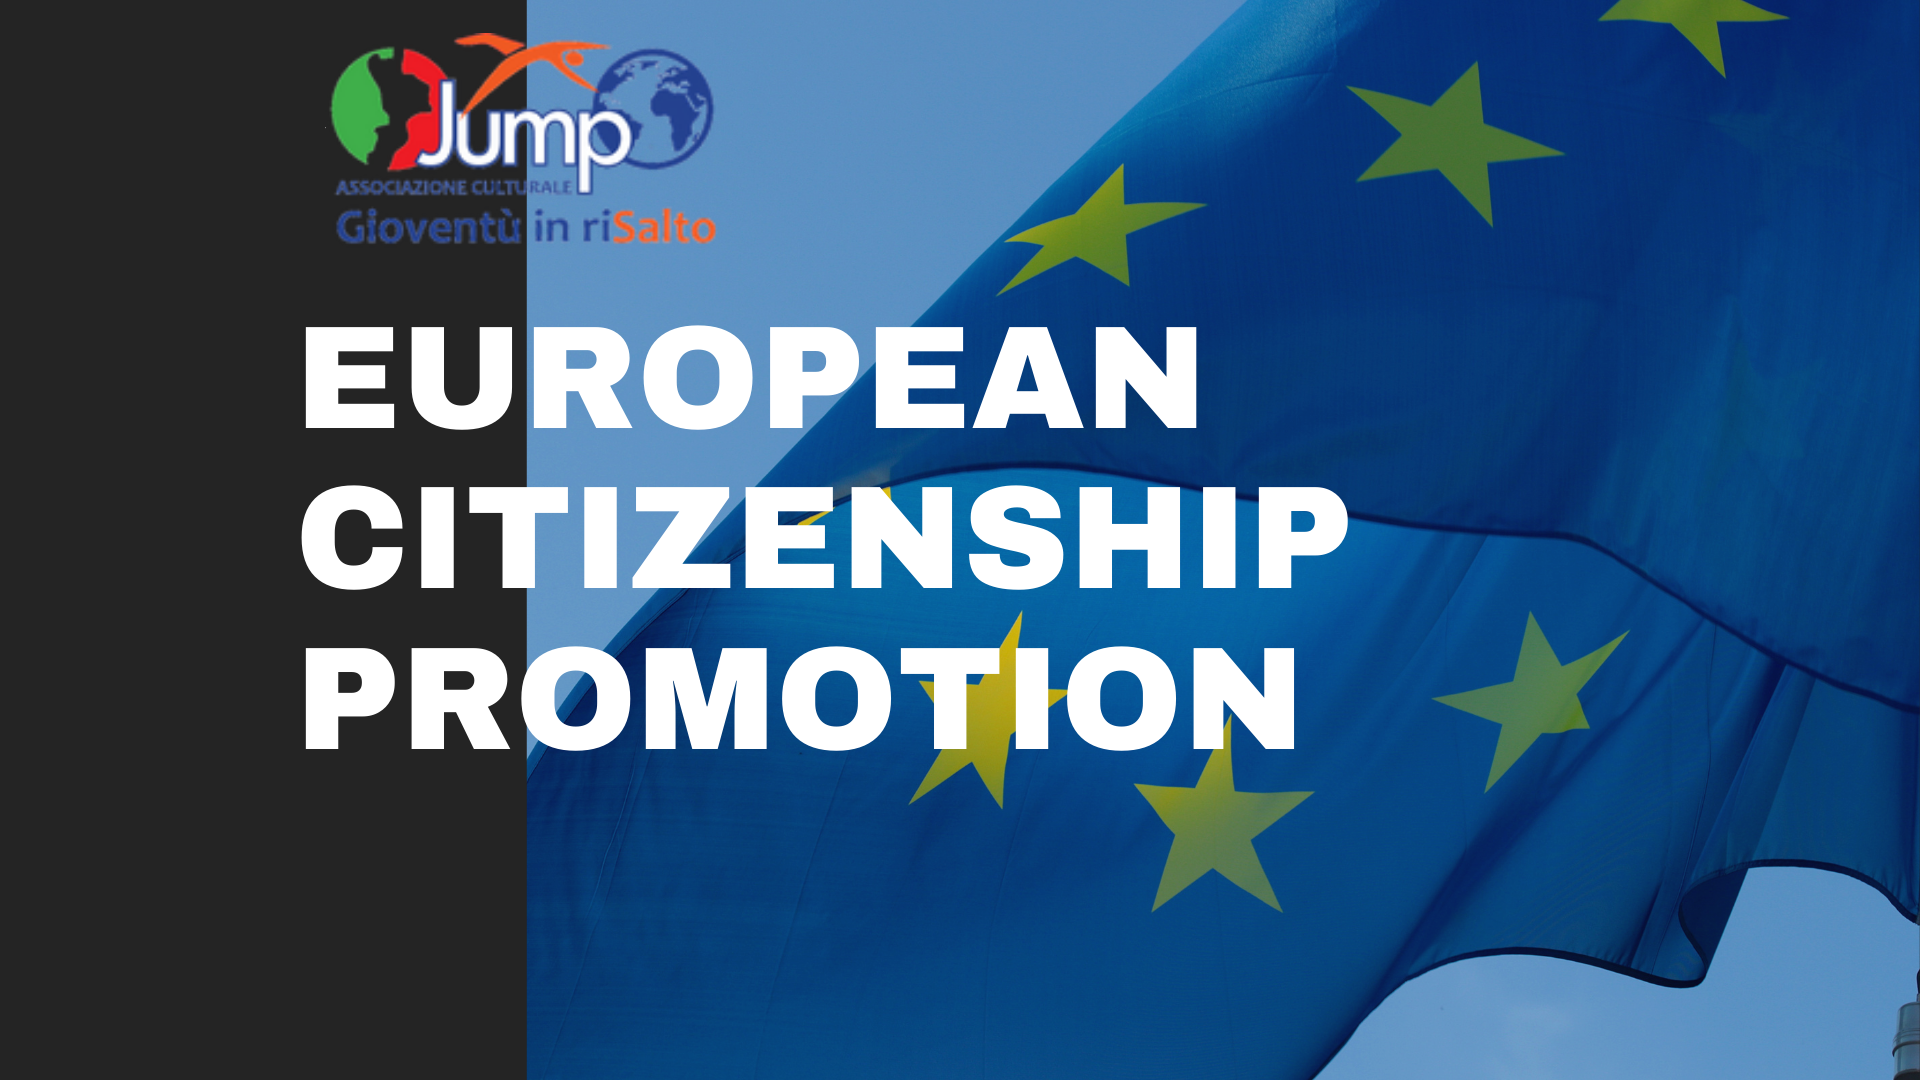 European Citizenship Promotion